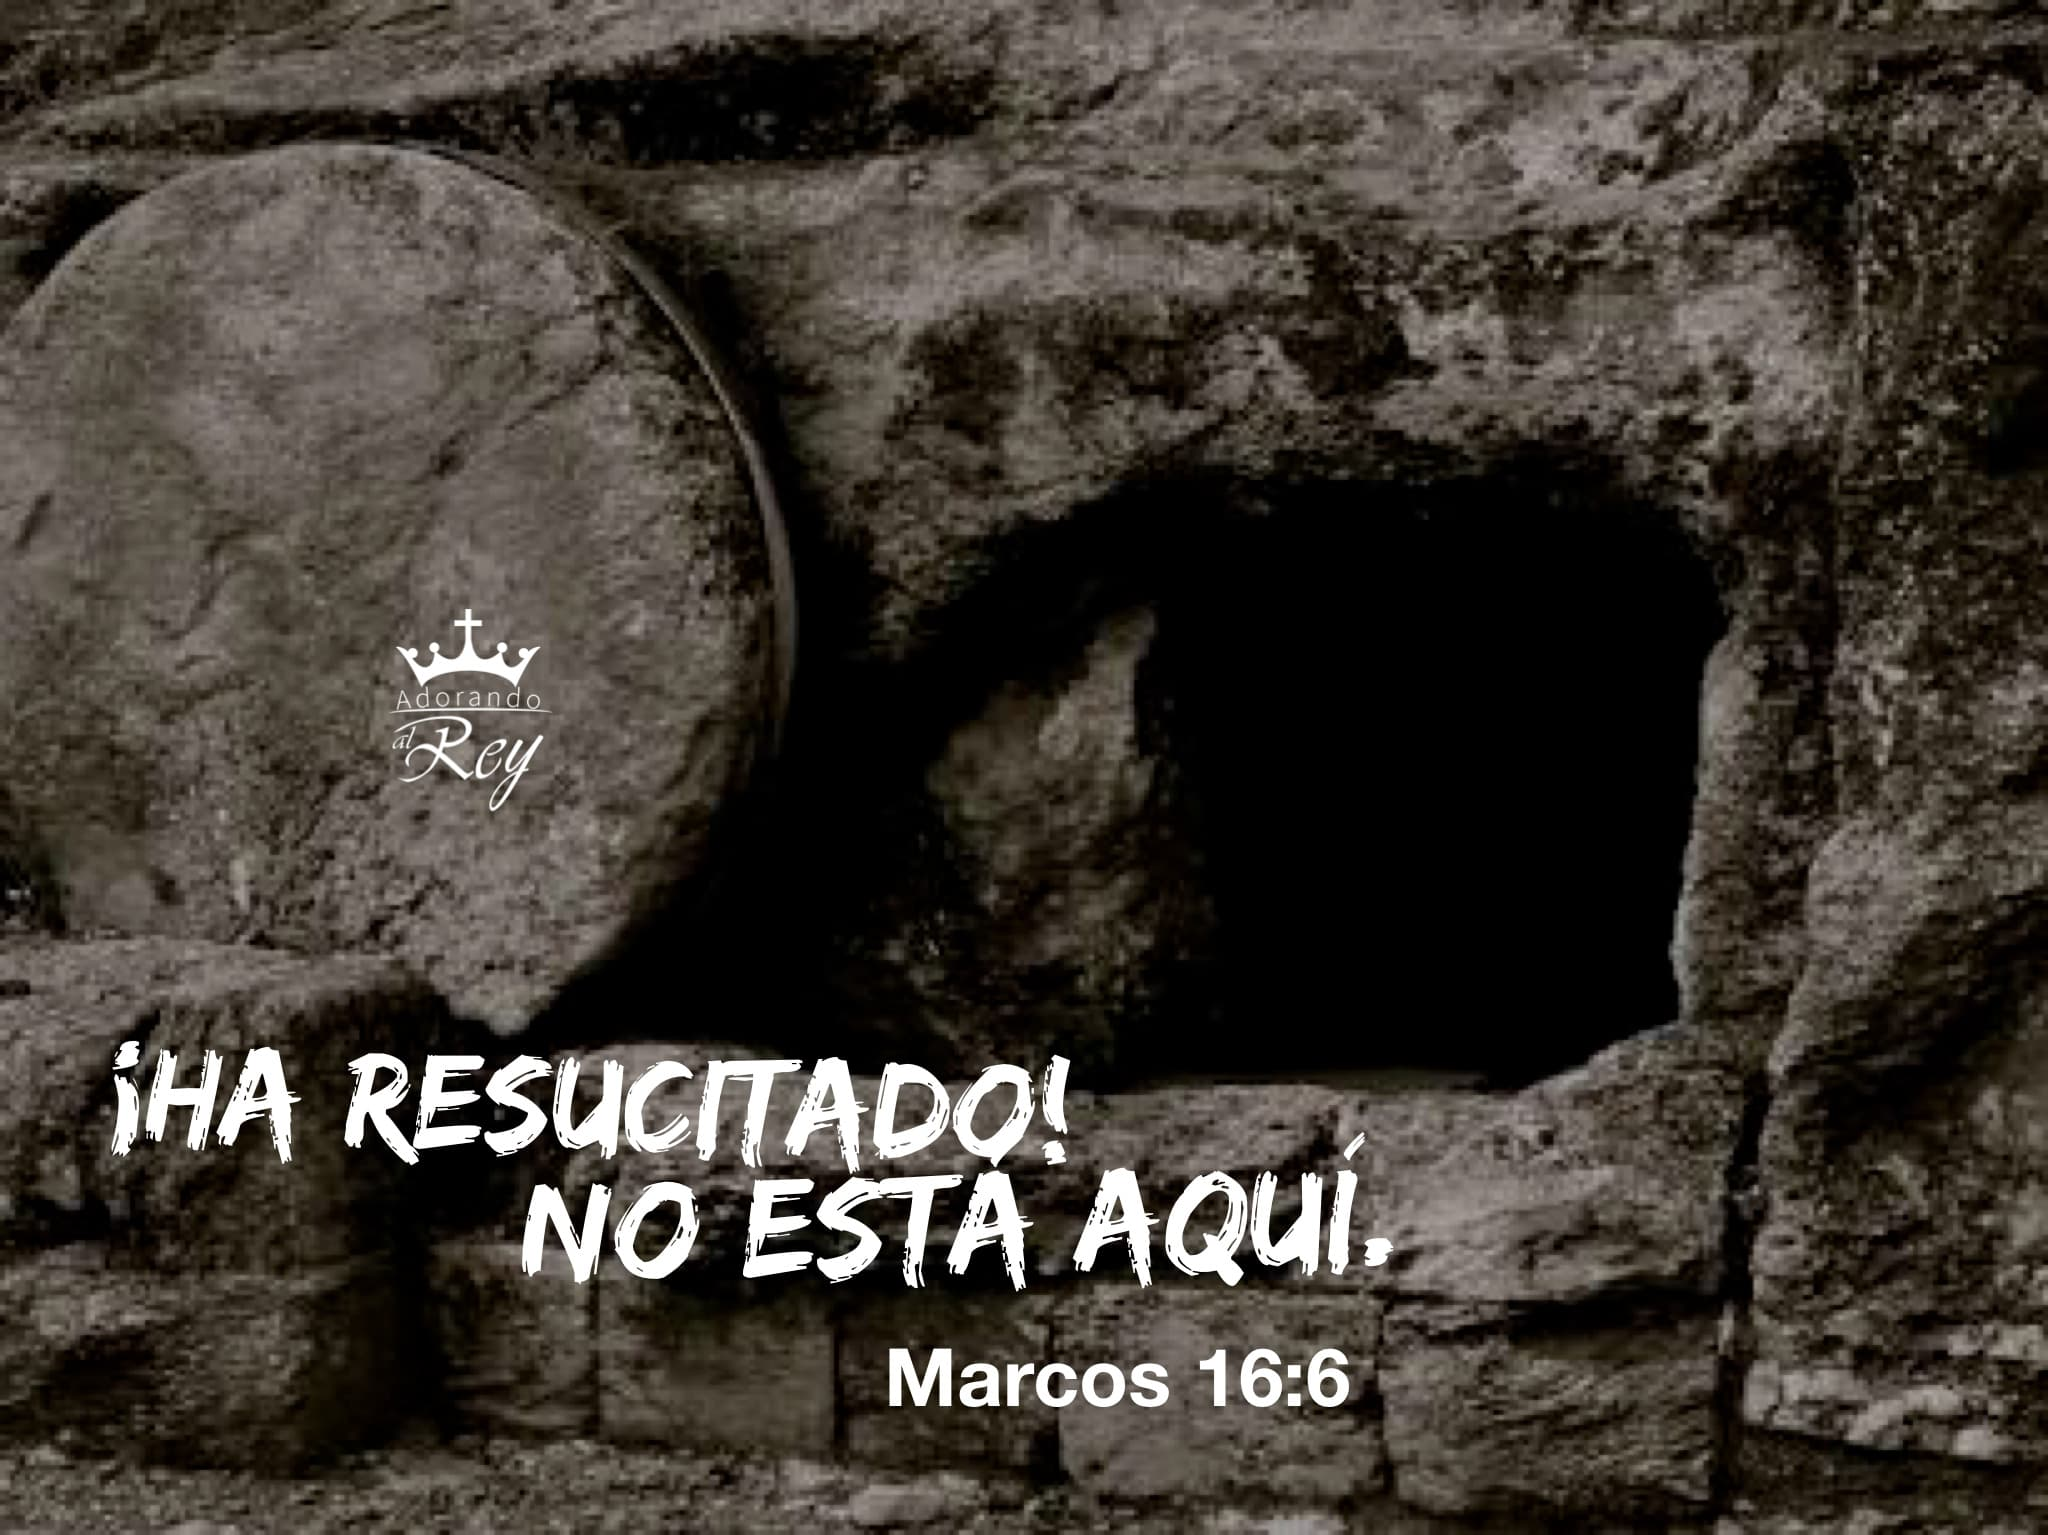 Marcos 16:6